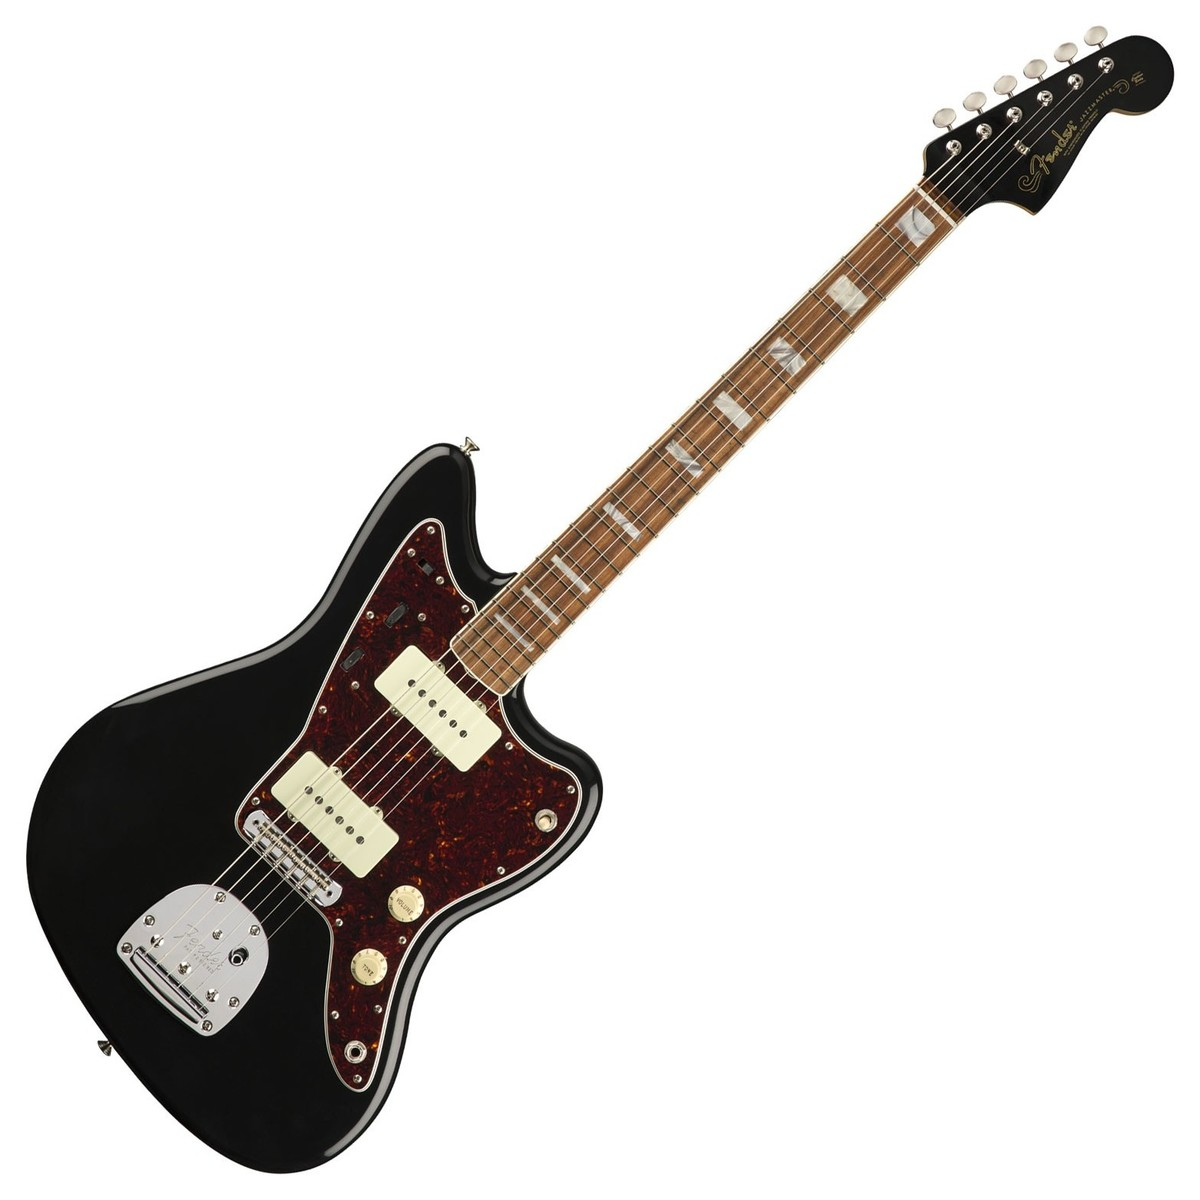 fender 60th anniversary jazzmaster pf black at gear4music. Black Bedroom Furniture Sets. Home Design Ideas